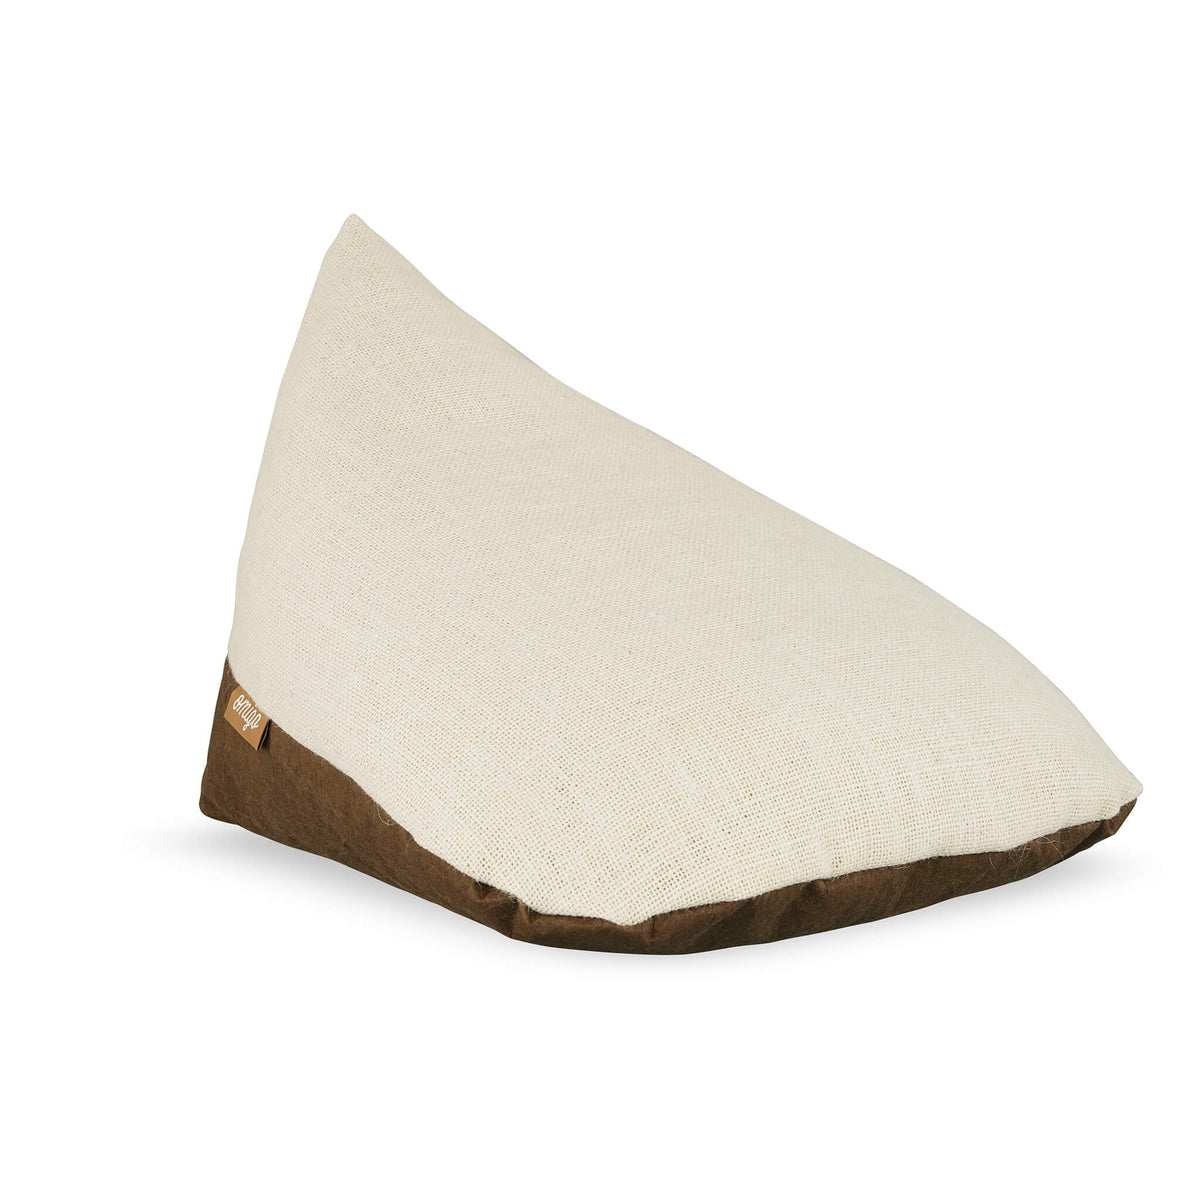 omigo meditation pillow brown with cream top